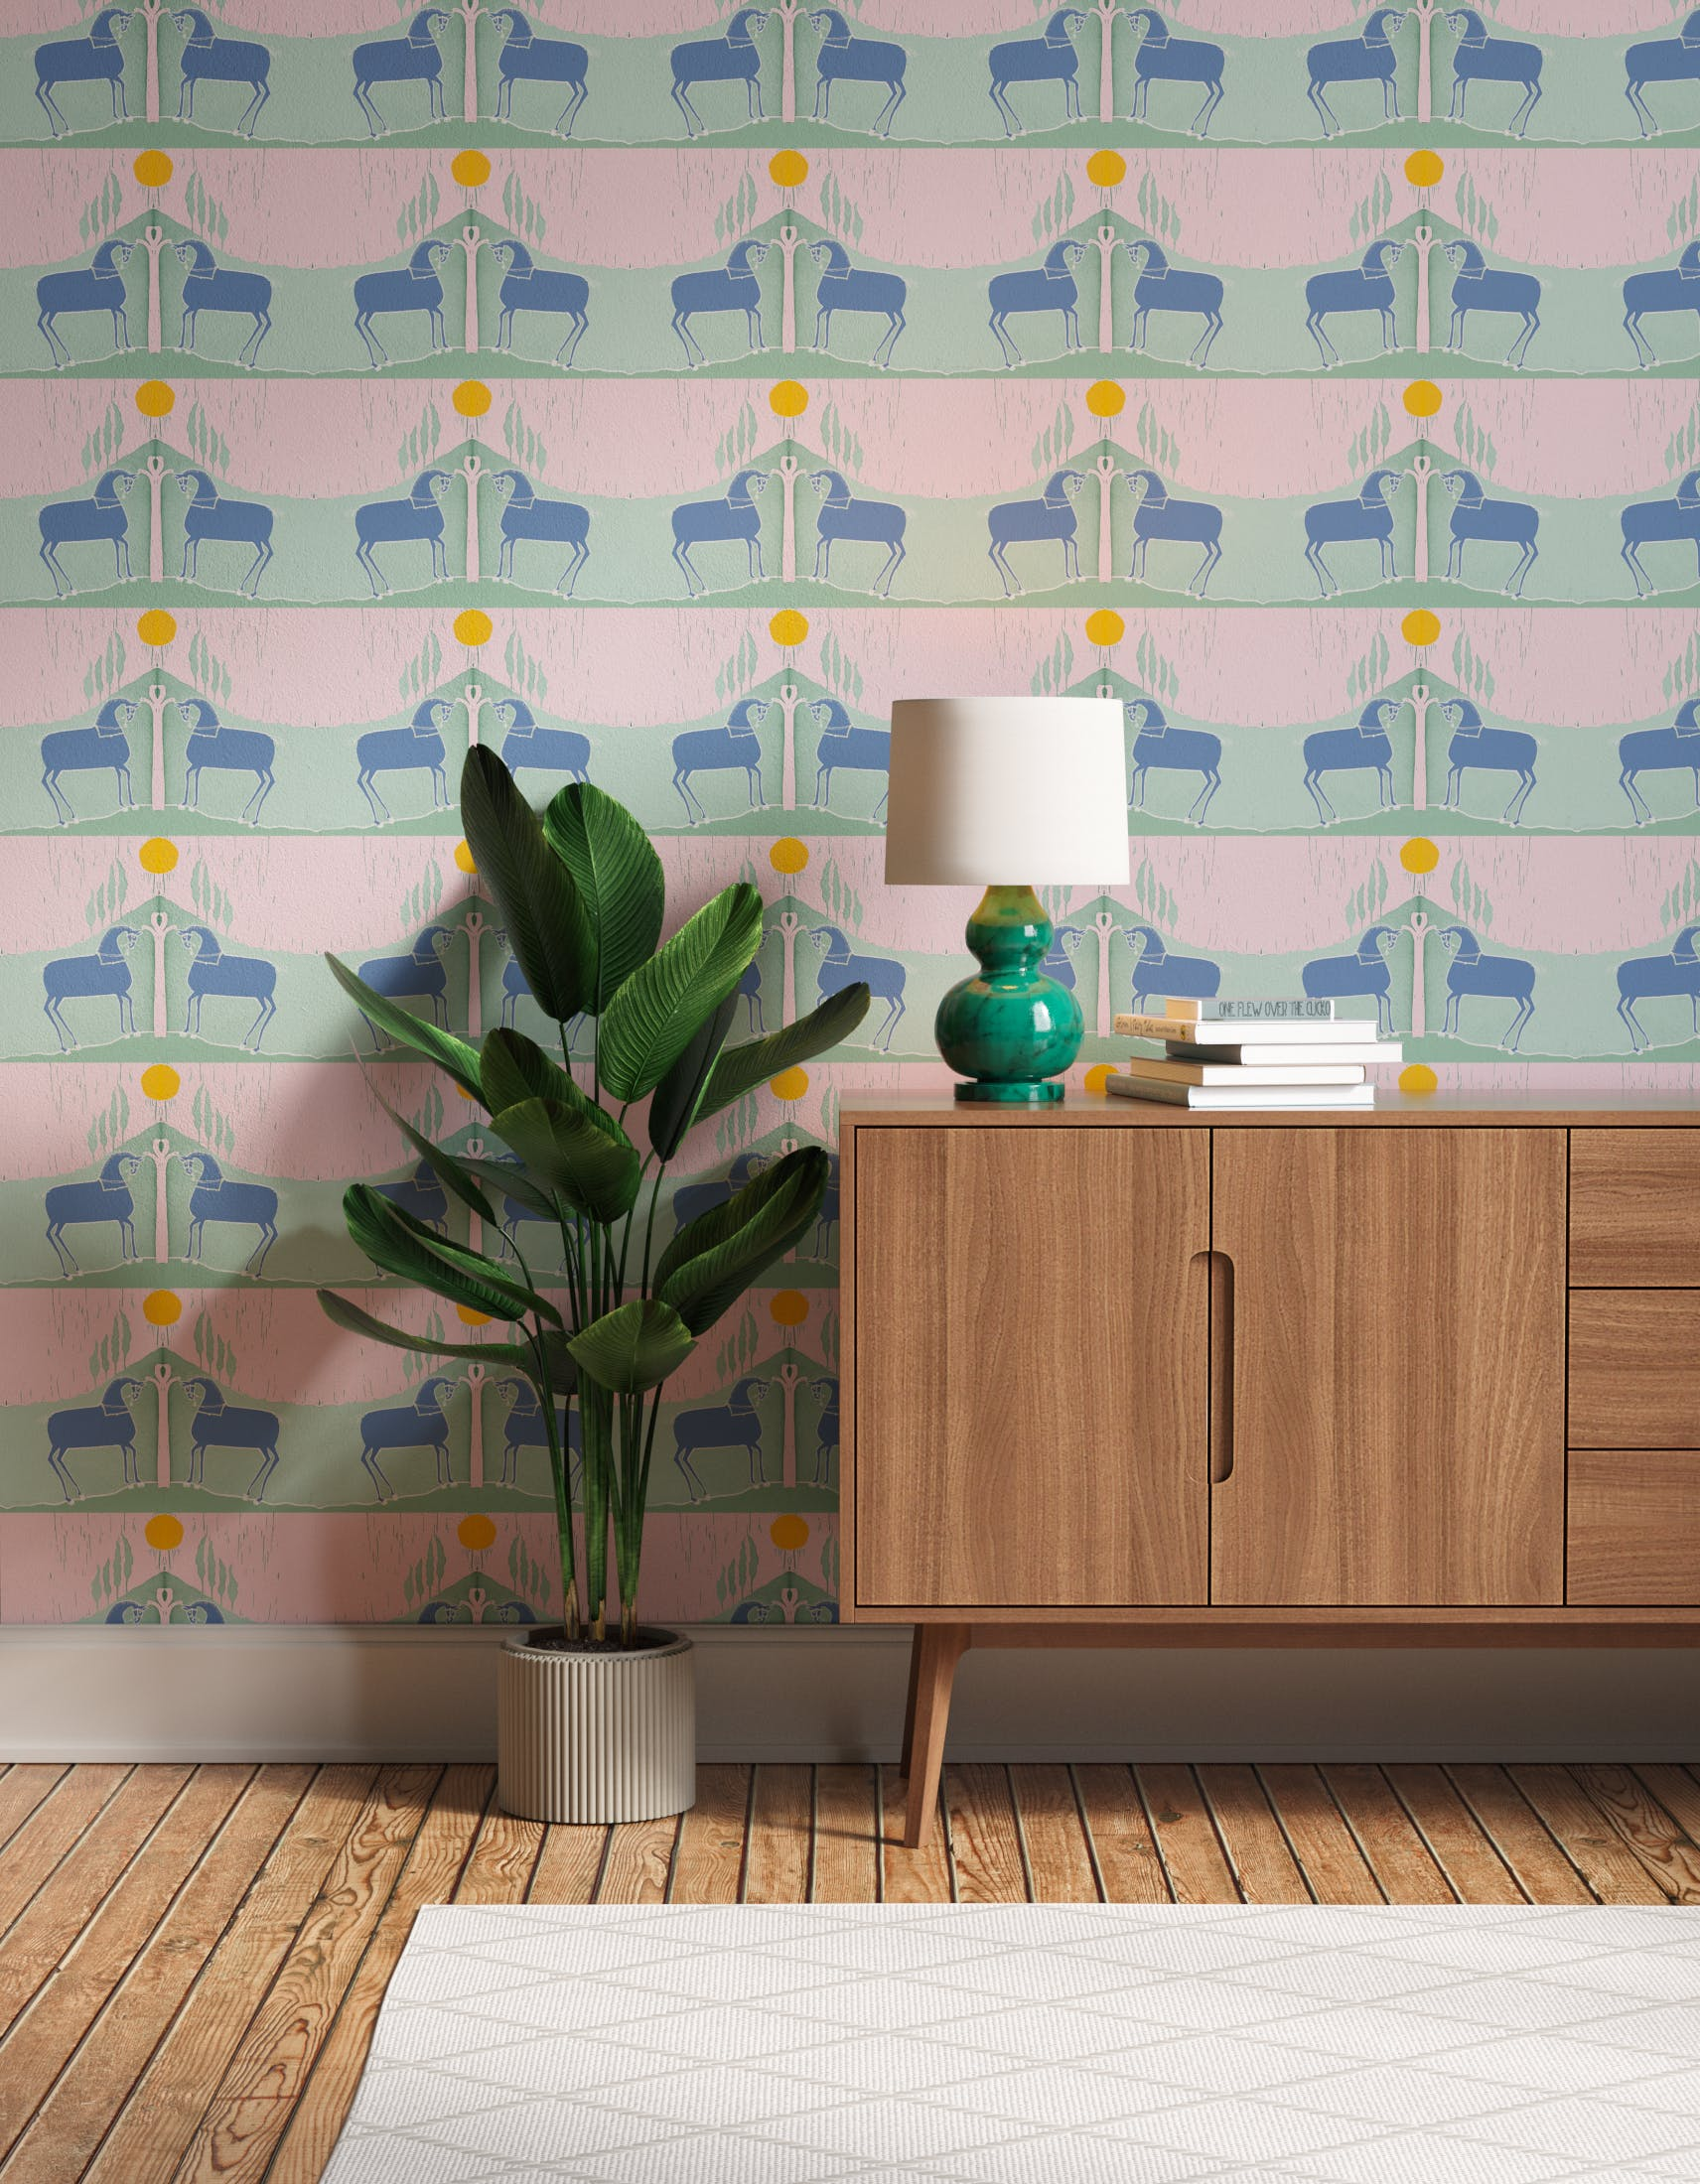 Hallway decorated with Lick x Annika Reed Western 03 pink and mint green animal wallpaper